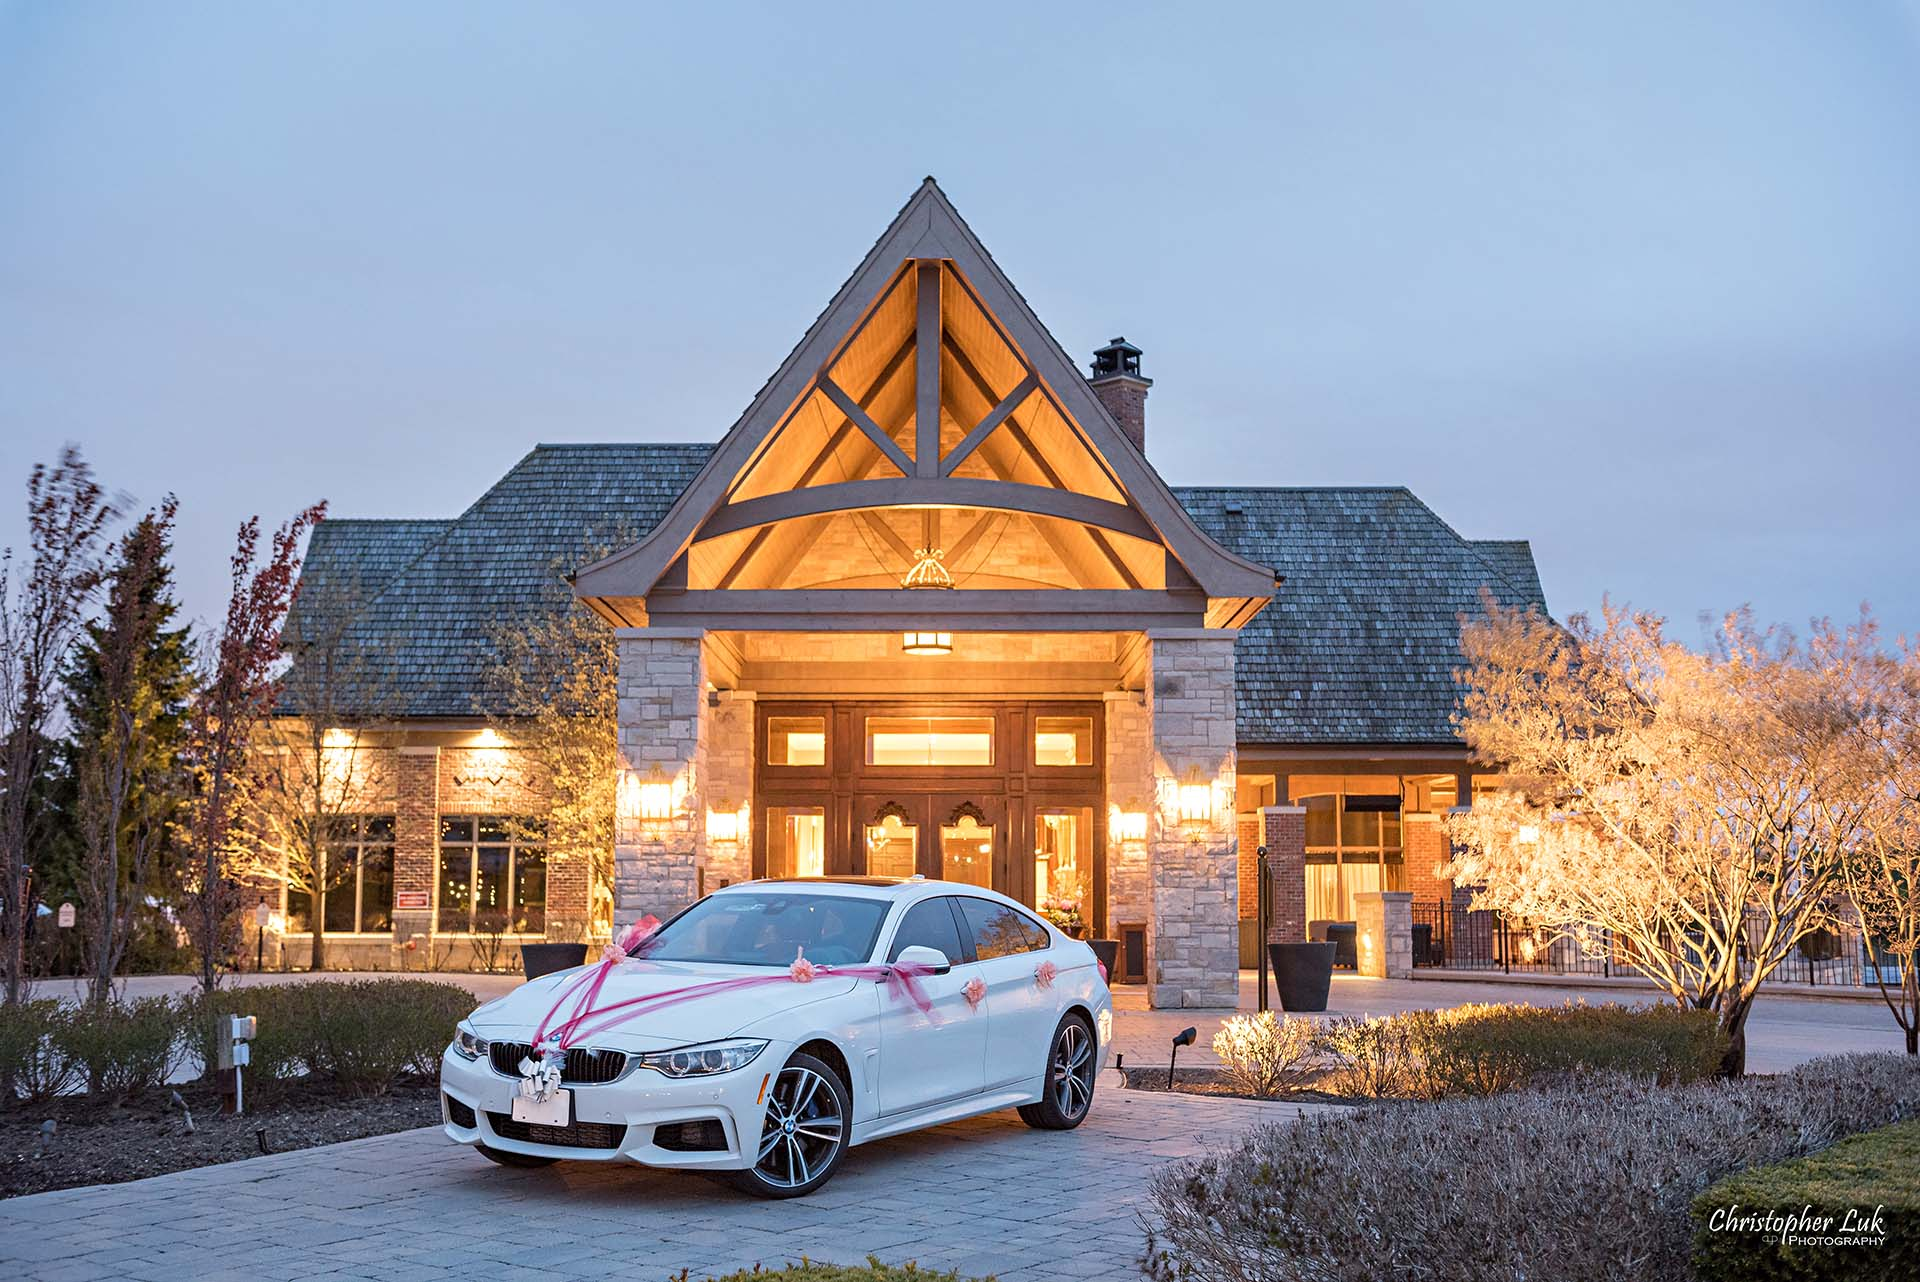 Christopher Luk Toronto Wedding Photographer Eagles Nest Golf Club Course Clubhouse Night Time Nighttime Sunset Long Exposure Driveway Main Entrance Steeple Landscape Decorated Ribbons Car BMW 435i GT Gran Grand Coupe Medium